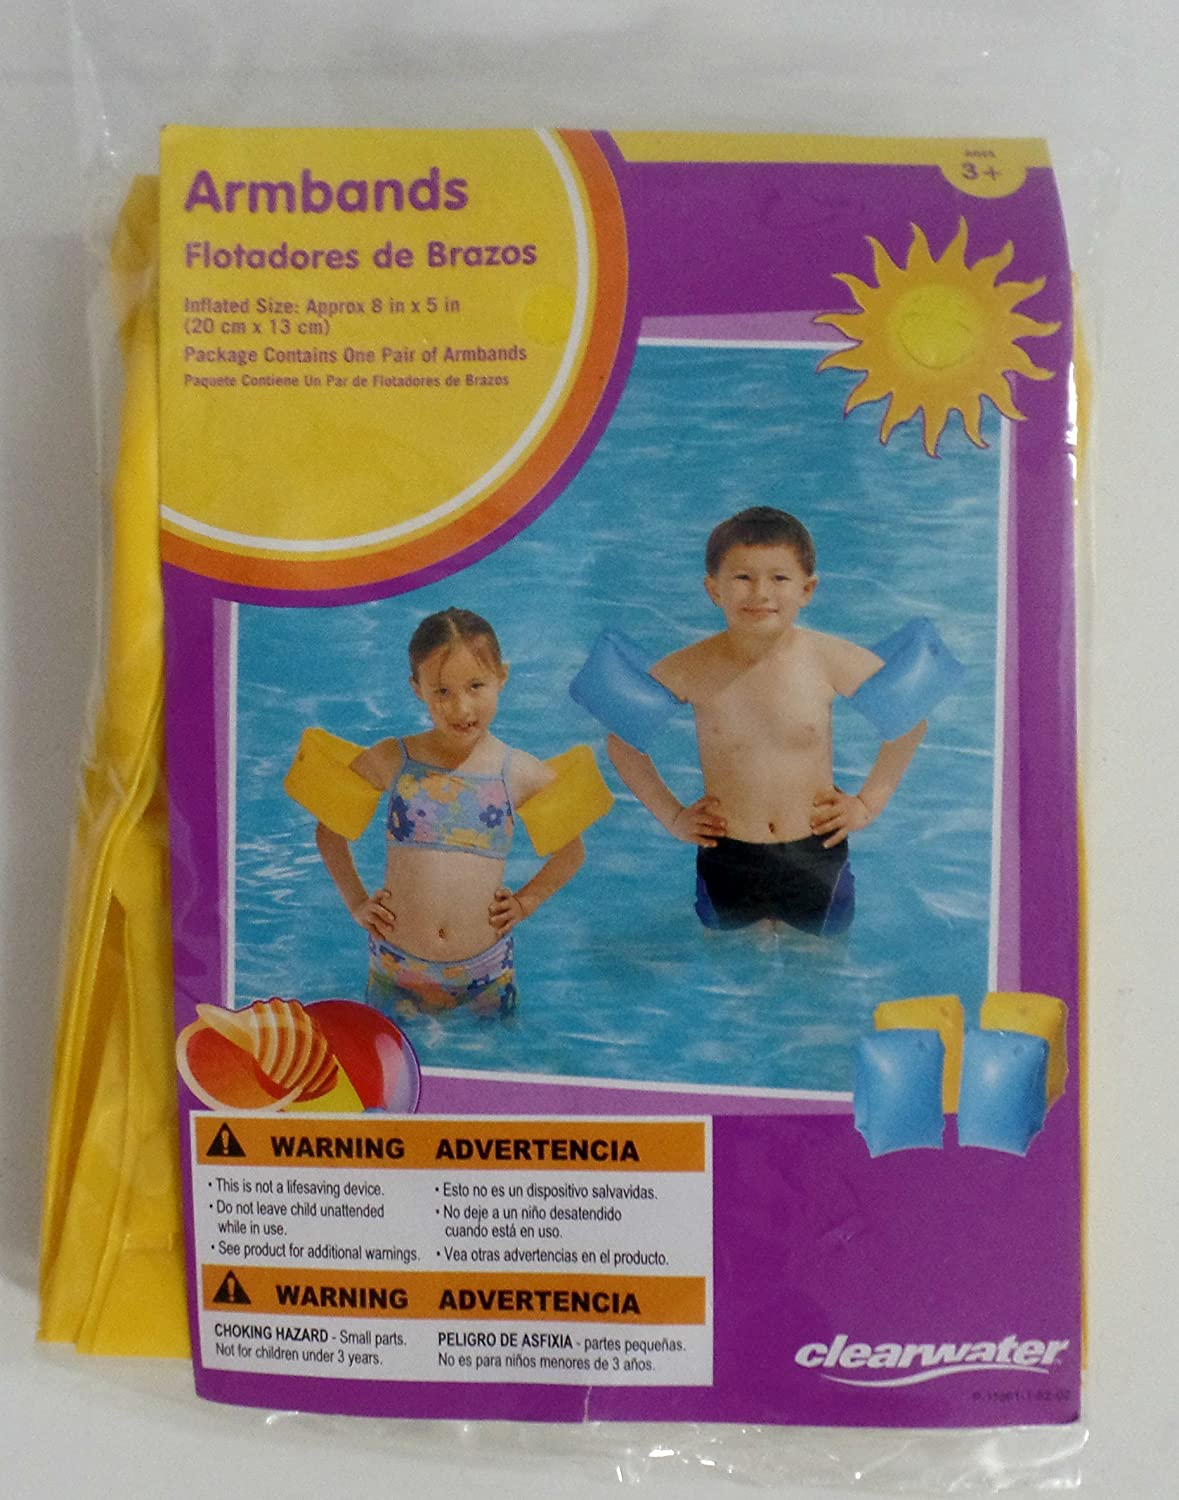 Amazon.com : Clearwater Armbands Manguitos (Blue or Yellow) (Blue) : Swim Floatation Devices : Sports & Outdoors